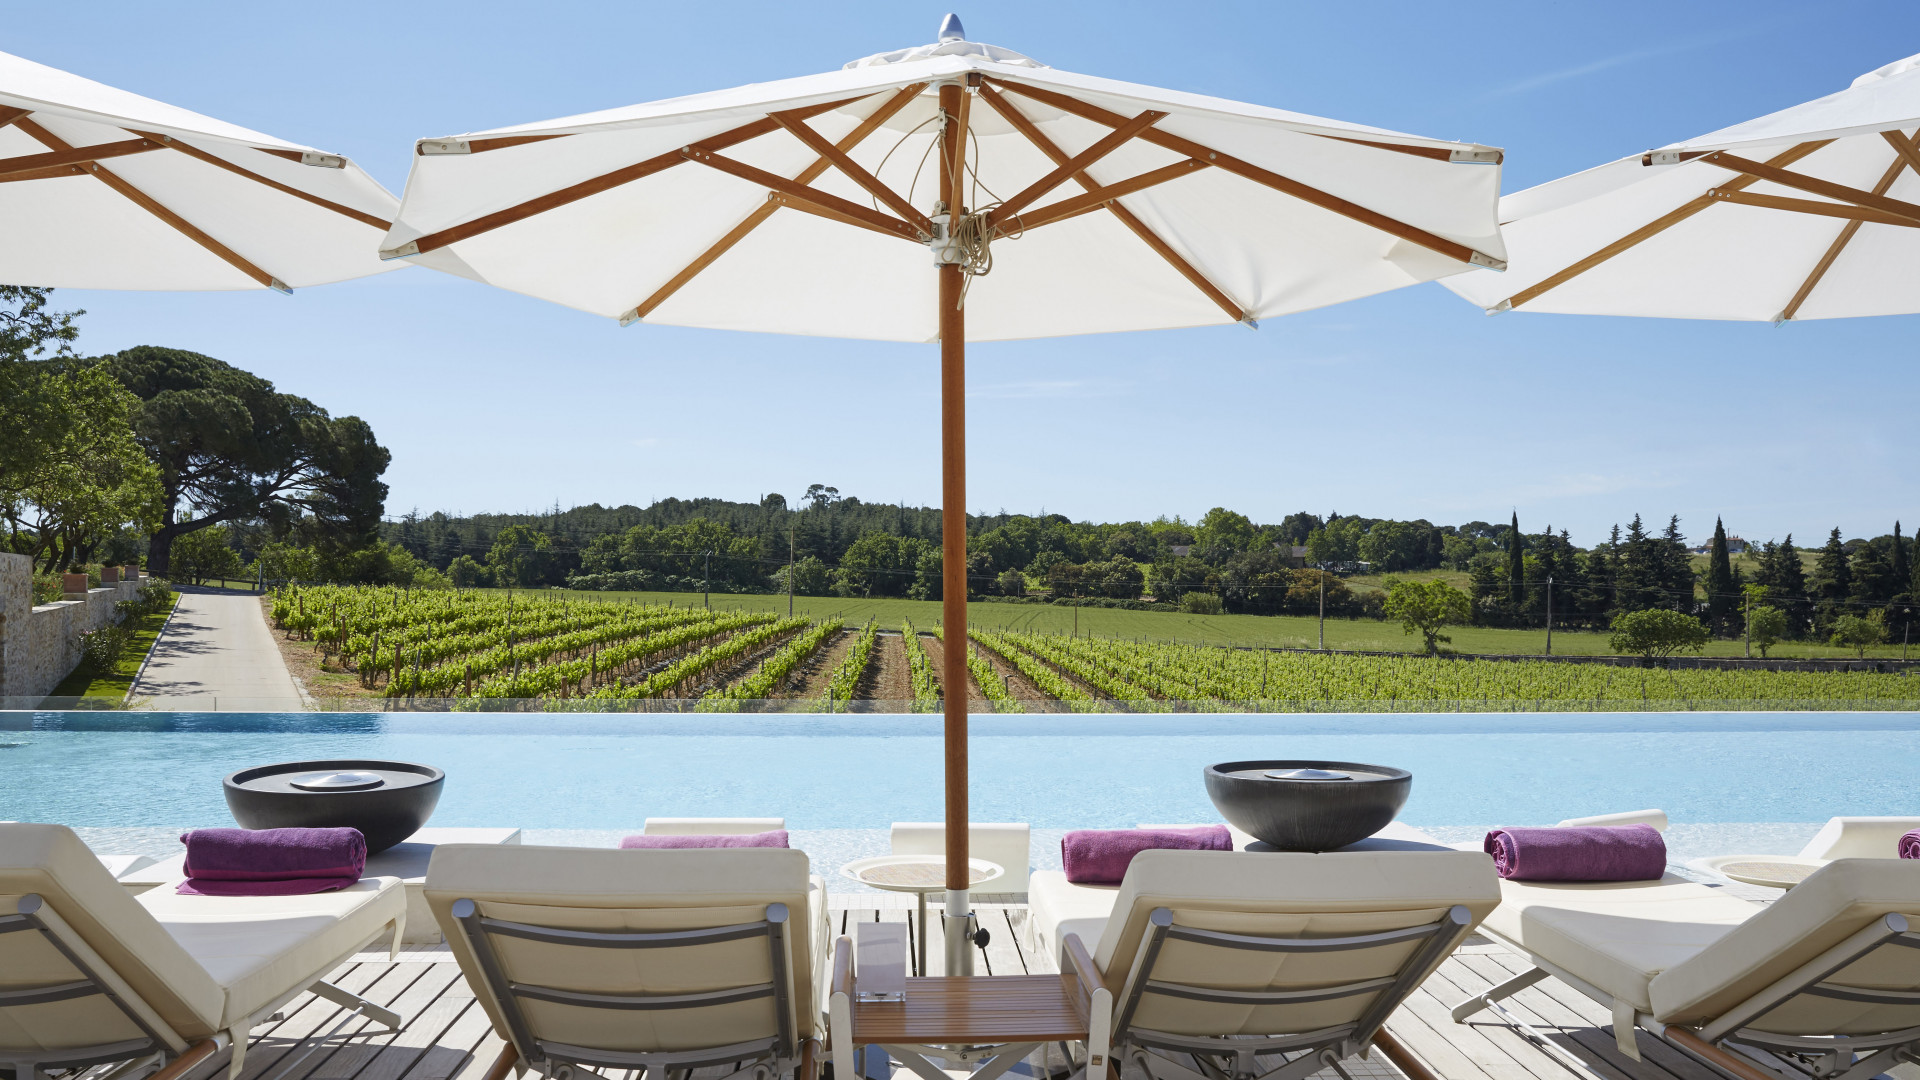 World's Most Awesome Swimming Pools: Domaine de Verchant Montpellier